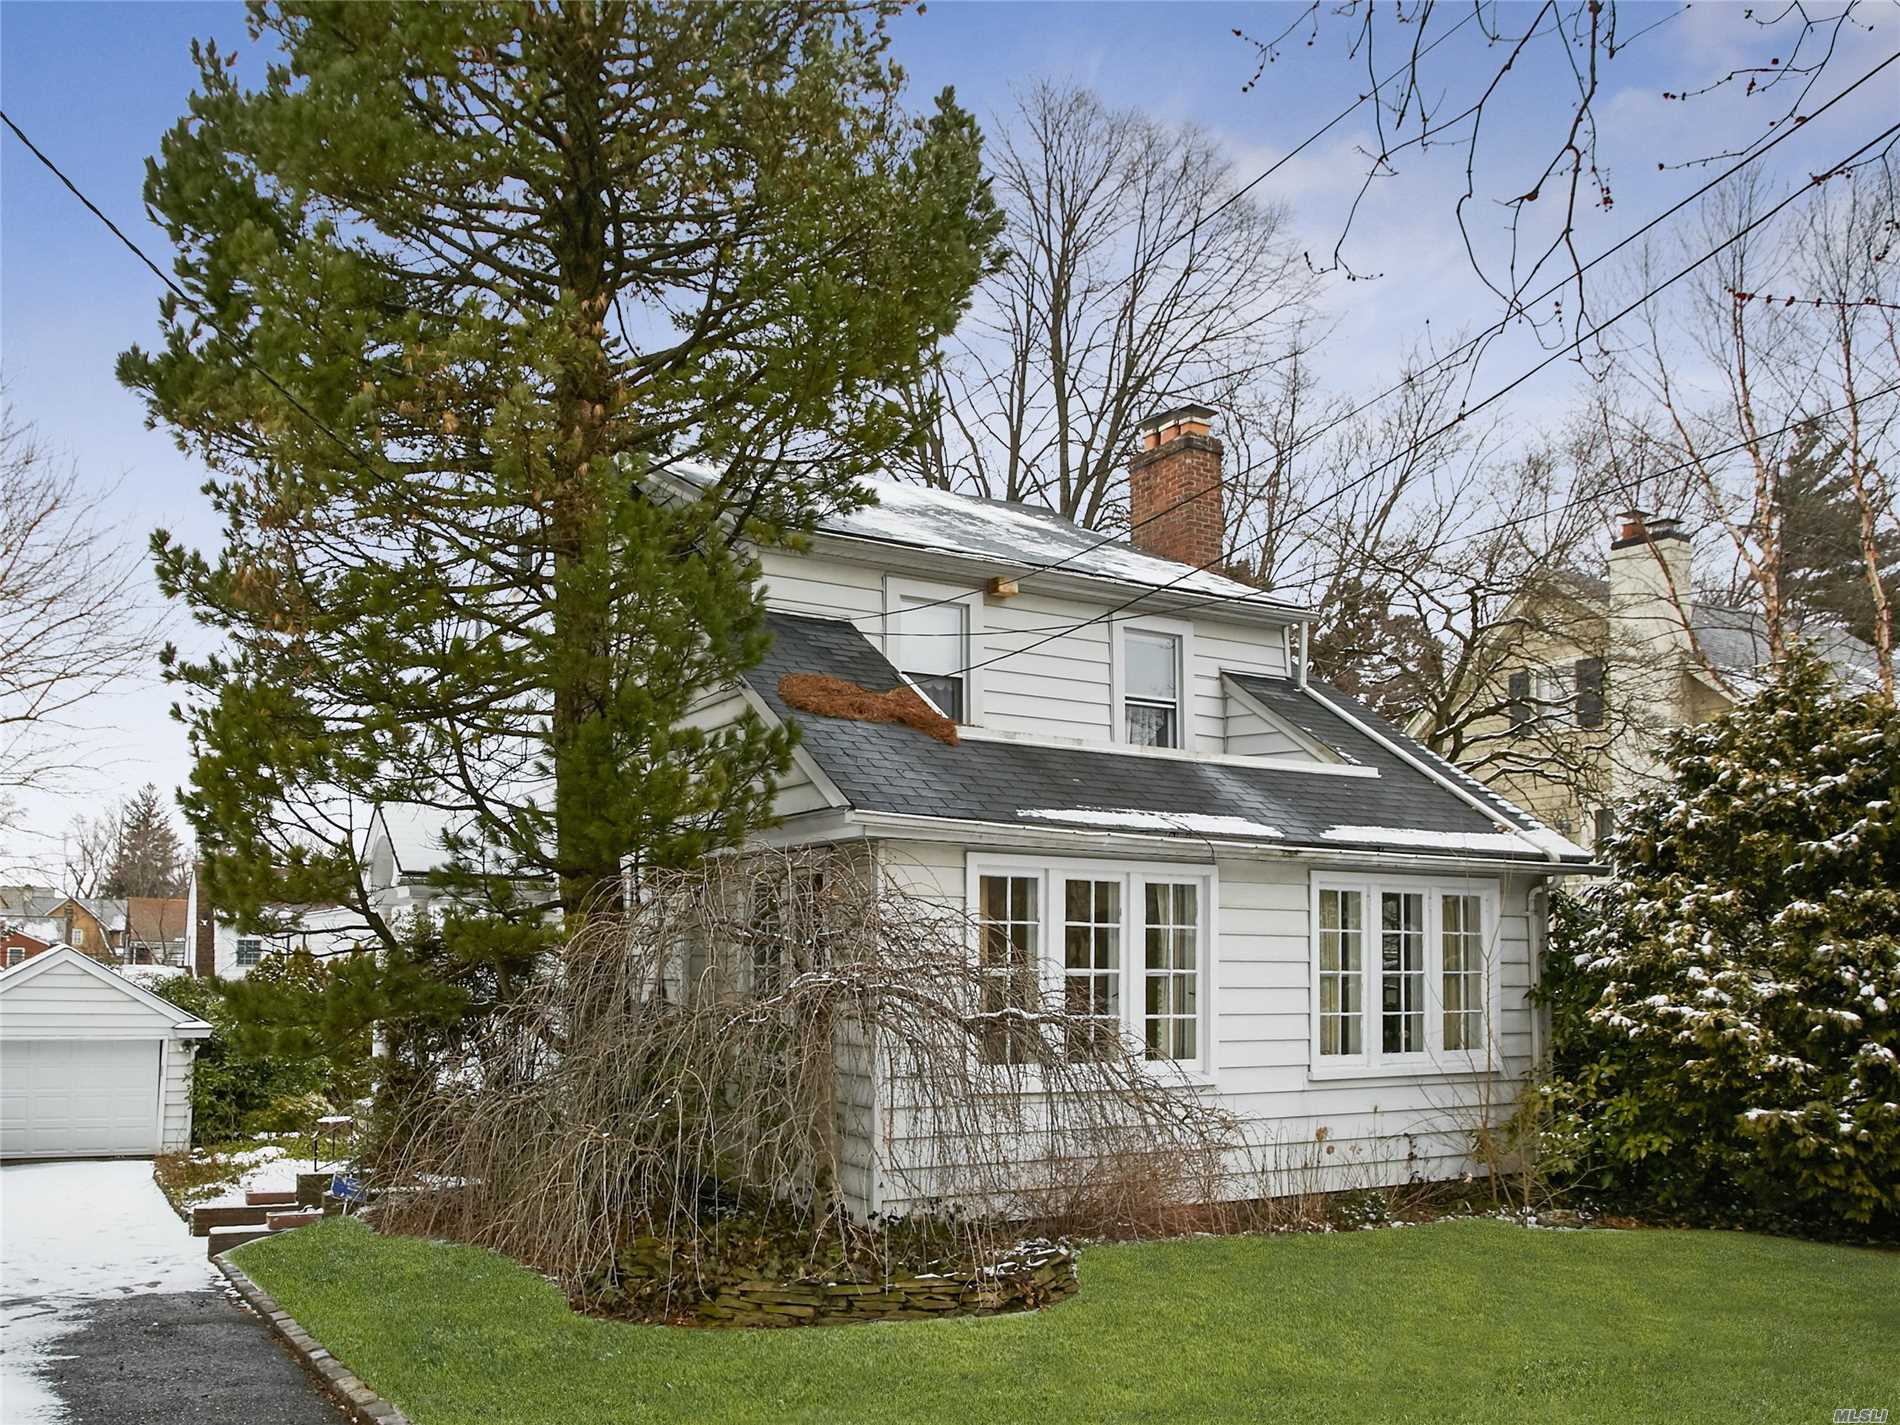 Colonial Revival With Main Entry On Side Of House With Gabled Hood And Columns.  Historical Landmark District 60 X 100 ,  Peninsula Surrounded By The Bay. This Area has Cesspool system and The Manor Association Dues Are $650. There Are Three Bedrooms And 1 1/2 Baths, Wood Floors, Fireplace In Living Room And Small Office On First Floor. There Is A Matching One Car Detached Garage,  House Needs Up-Dating.